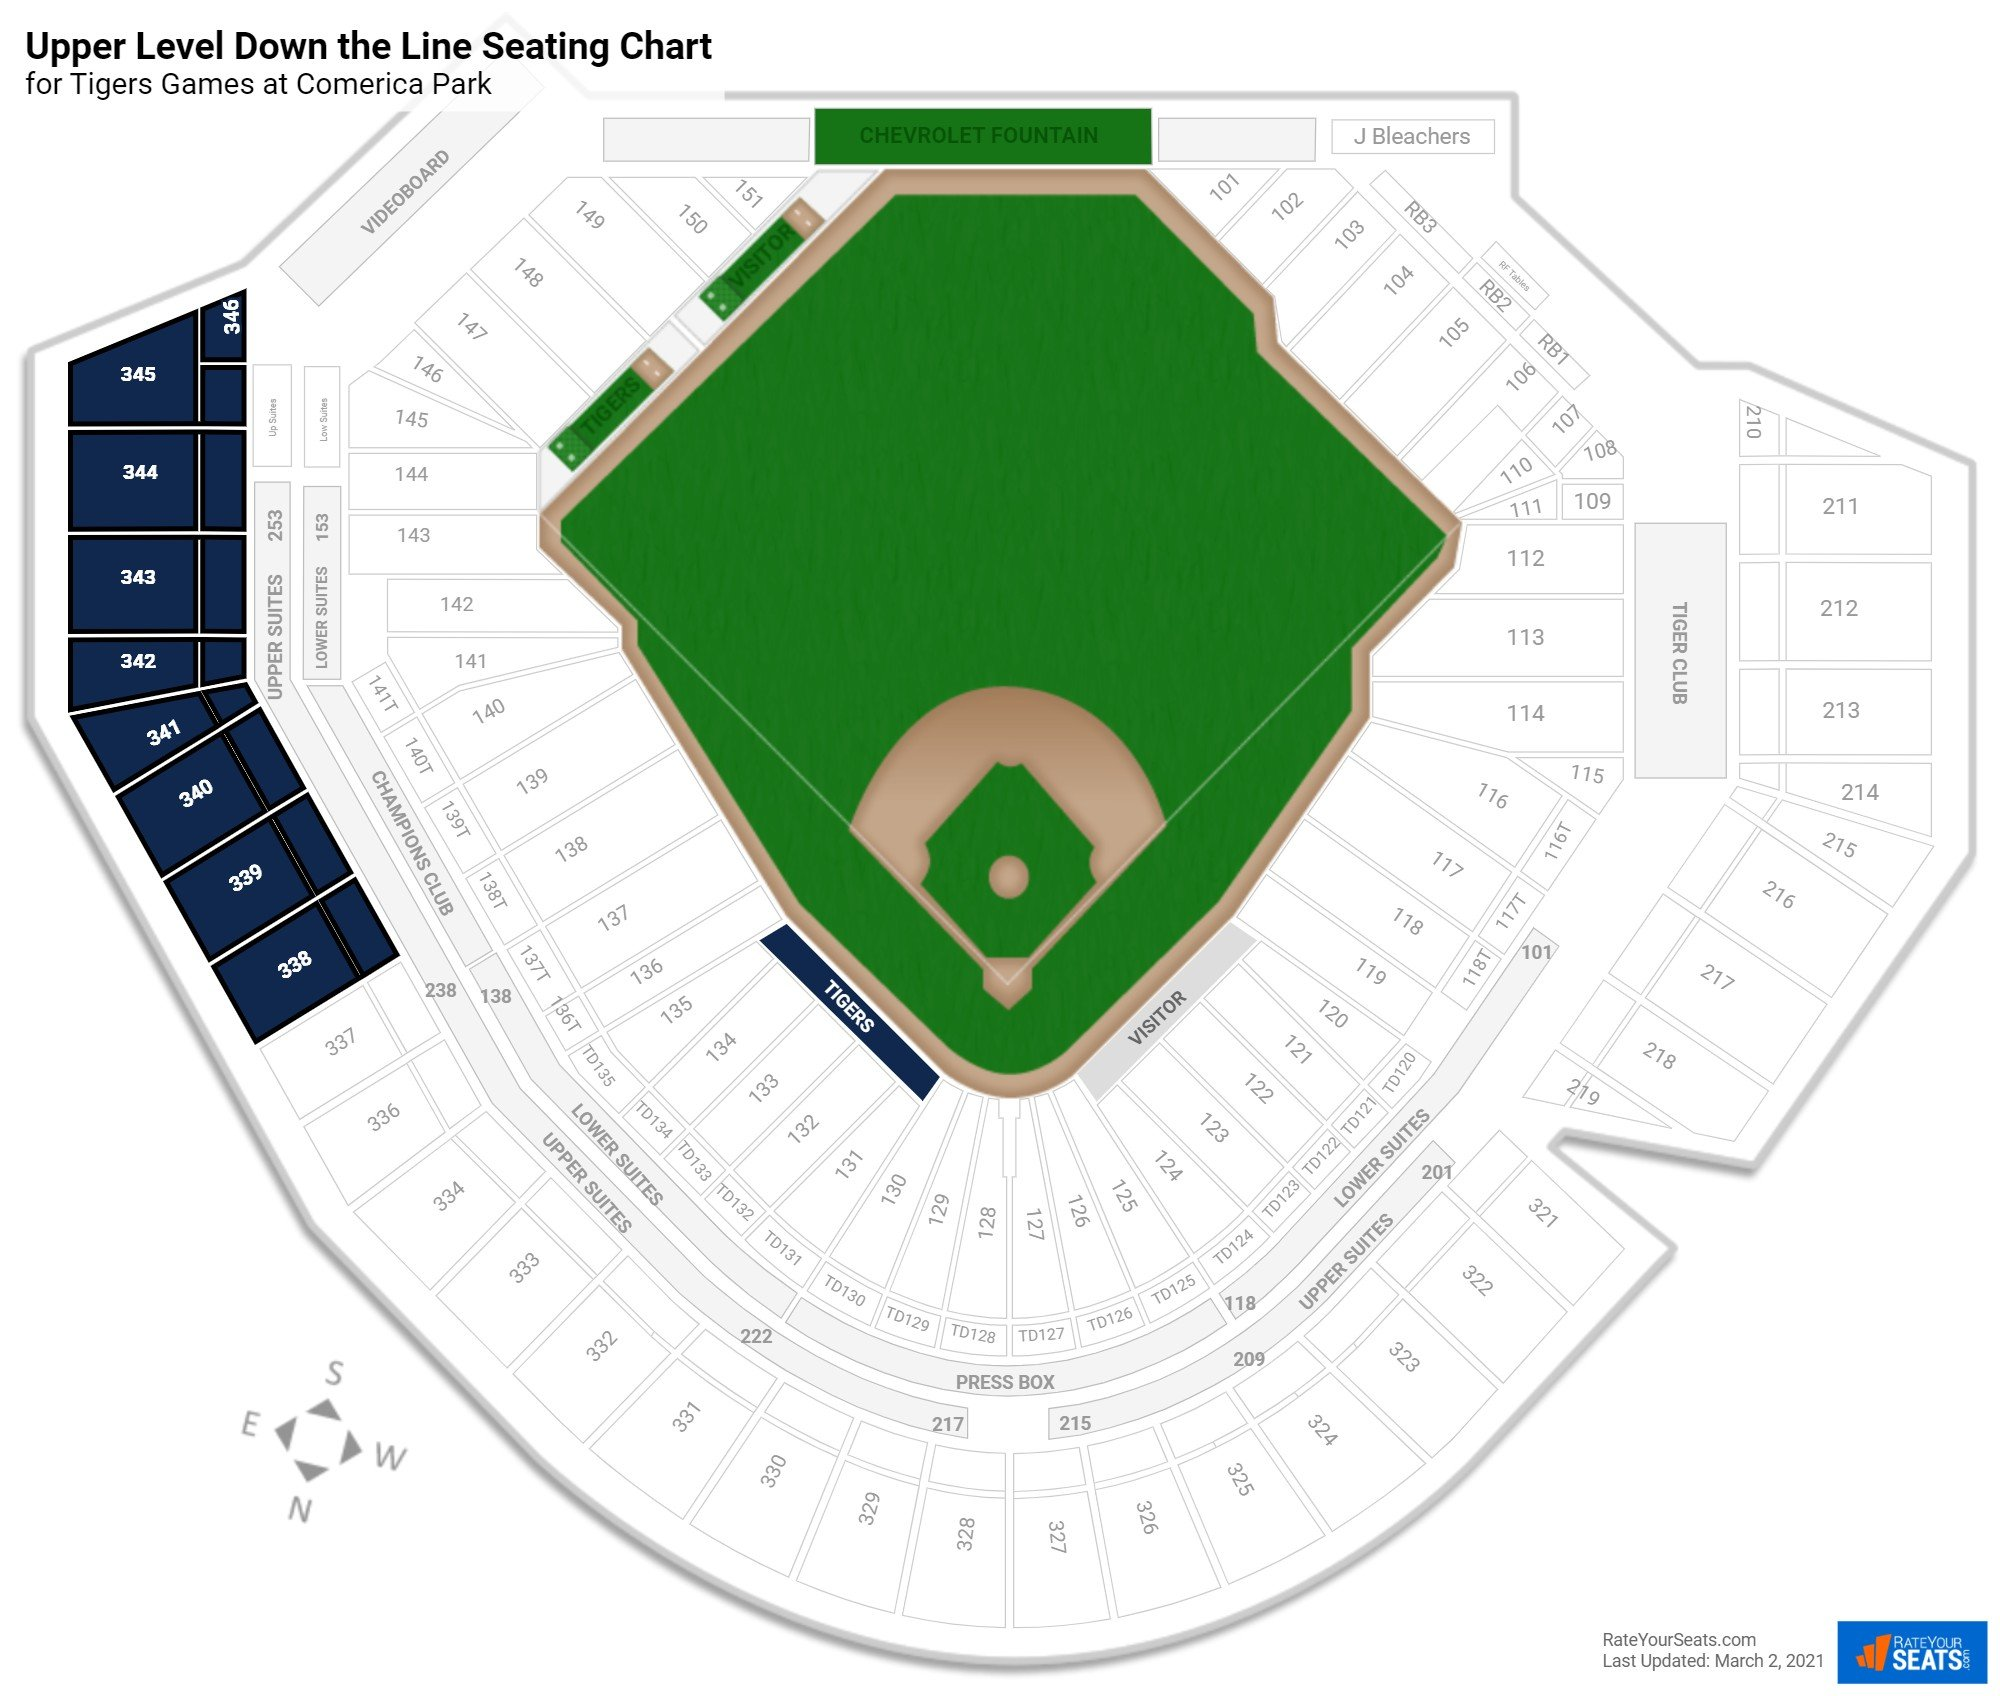 Comerica Park Upper Level Down the Line seating chart